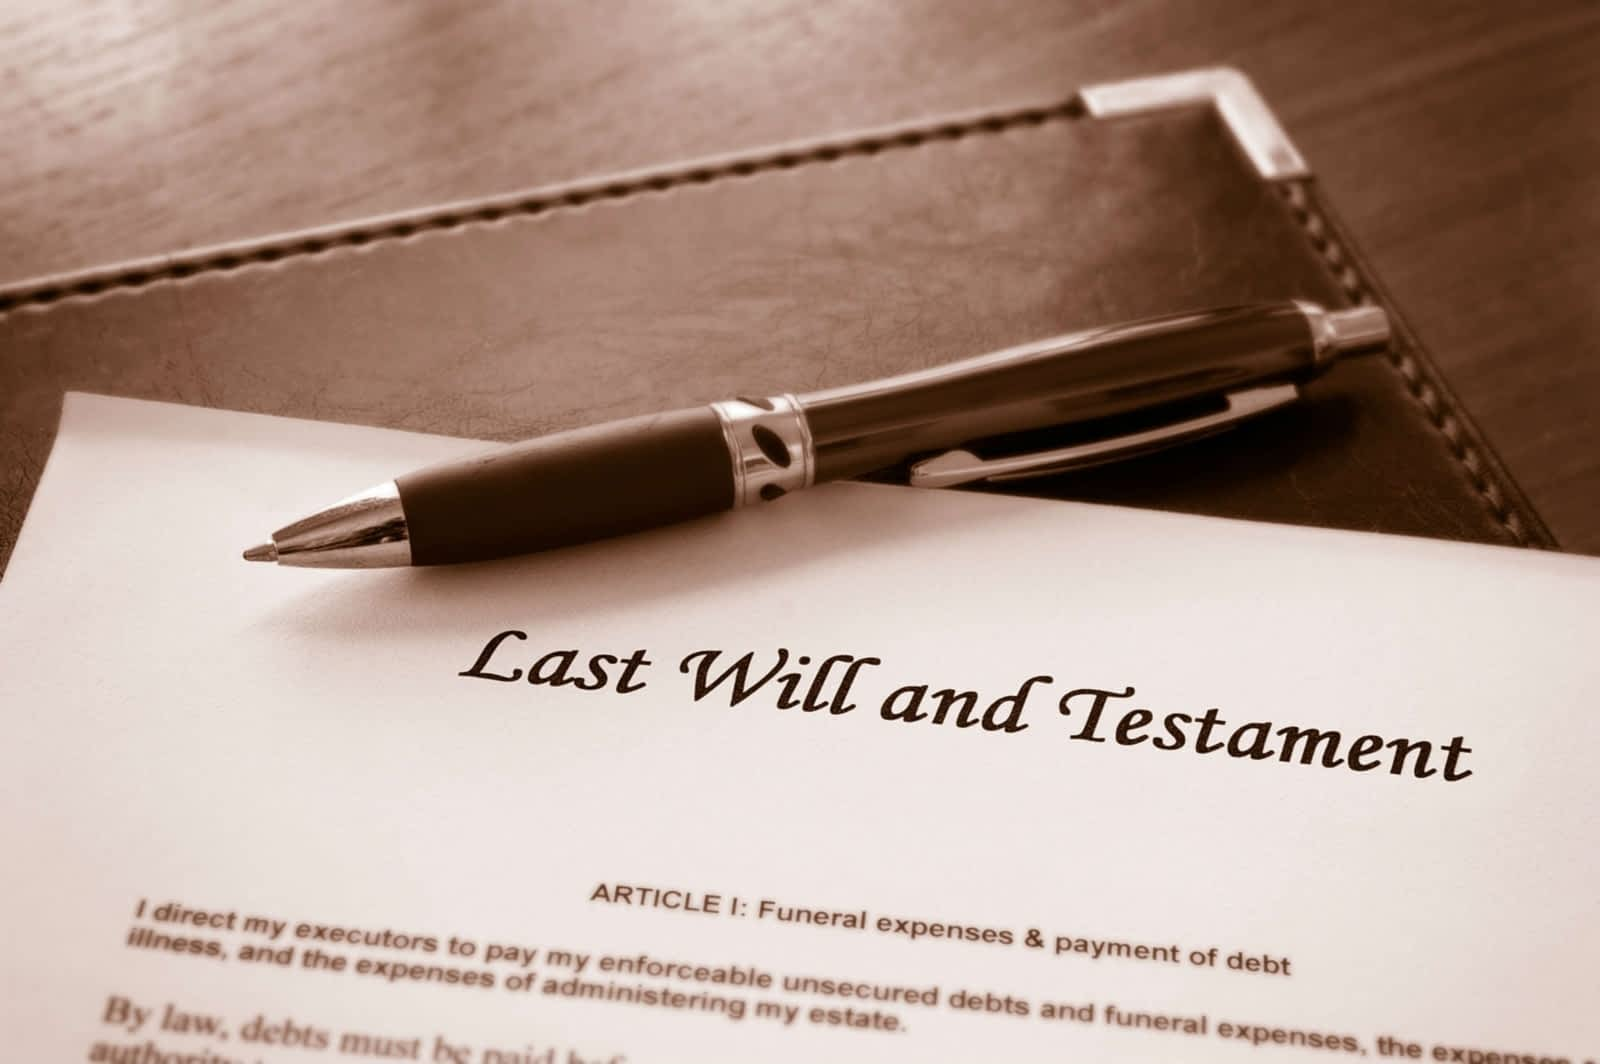 Last Will And Testament in Knoxville, Tennessee | Landry & Azevedo Attorneys At Law